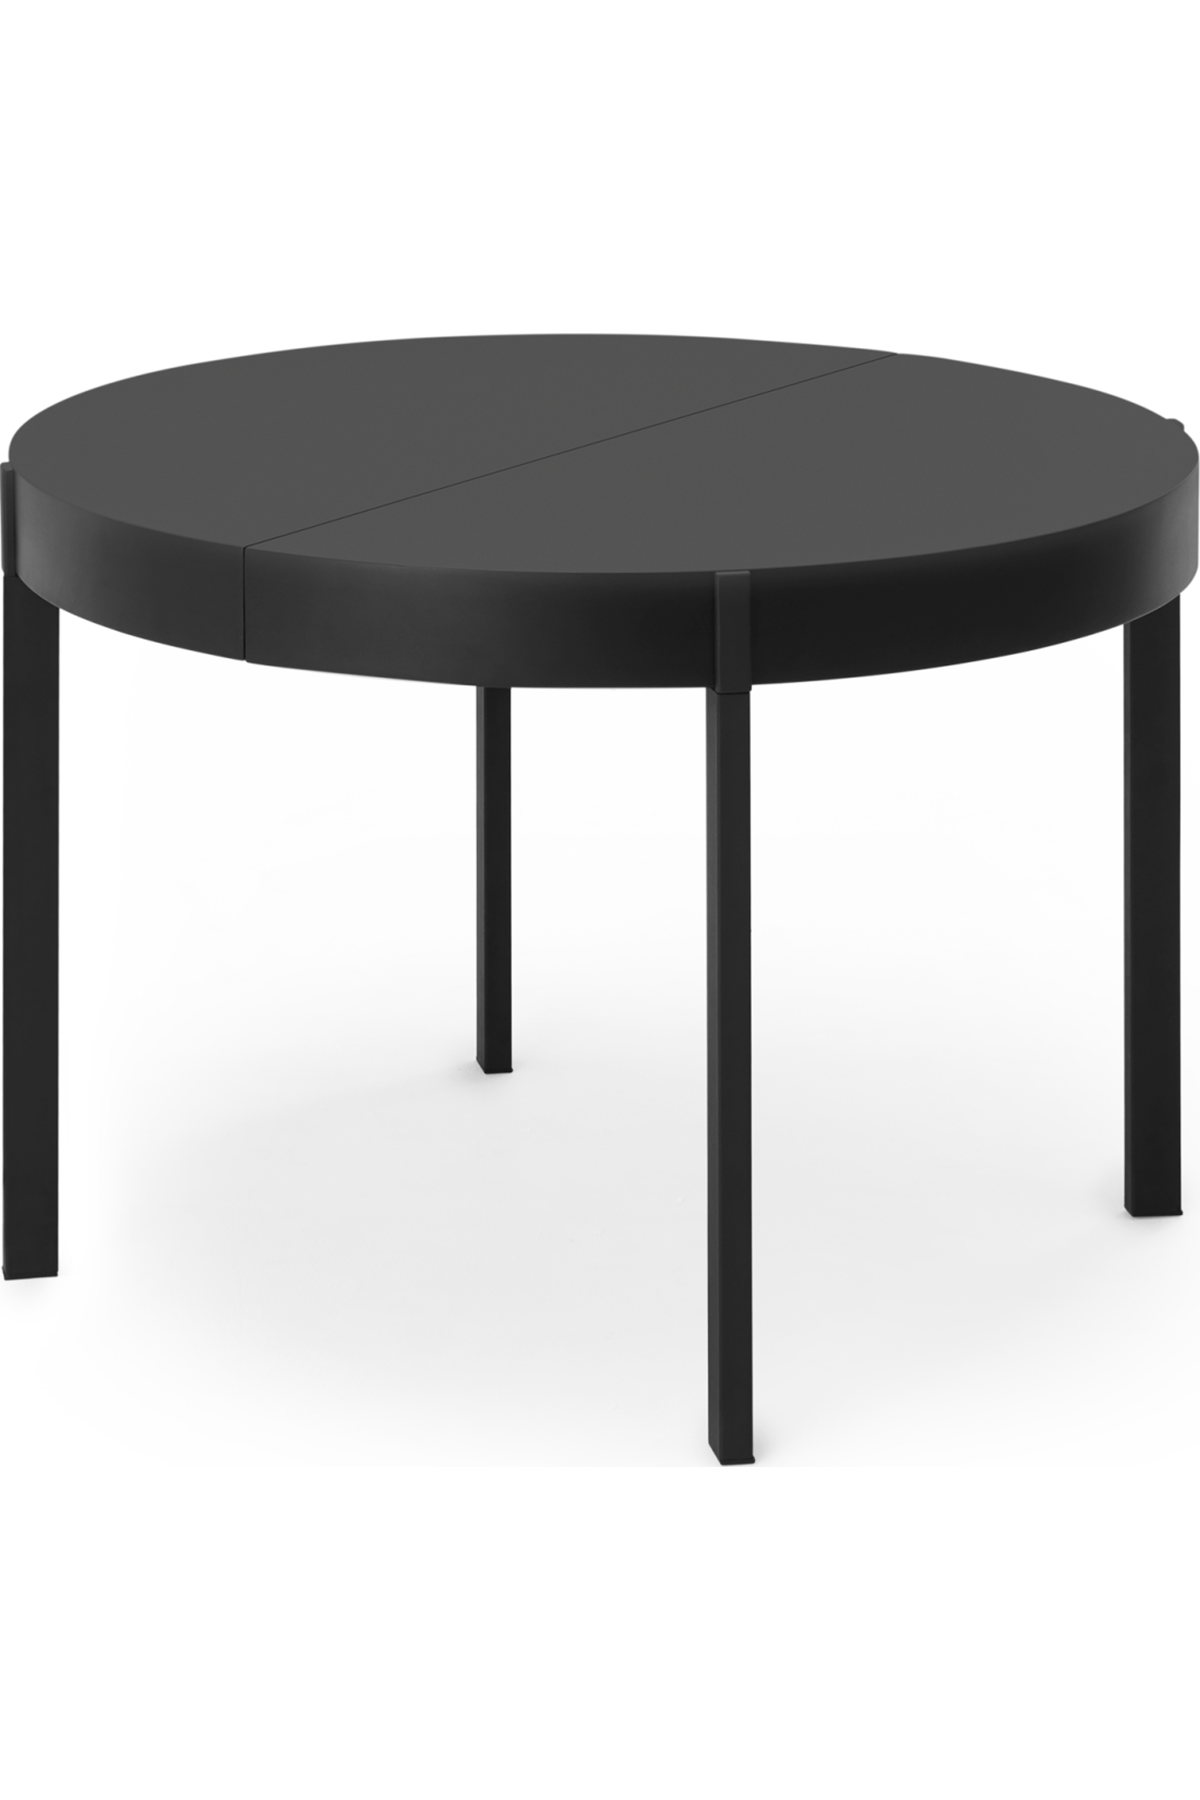 Made Round Extending Dining Table Black Express Delivery Metal